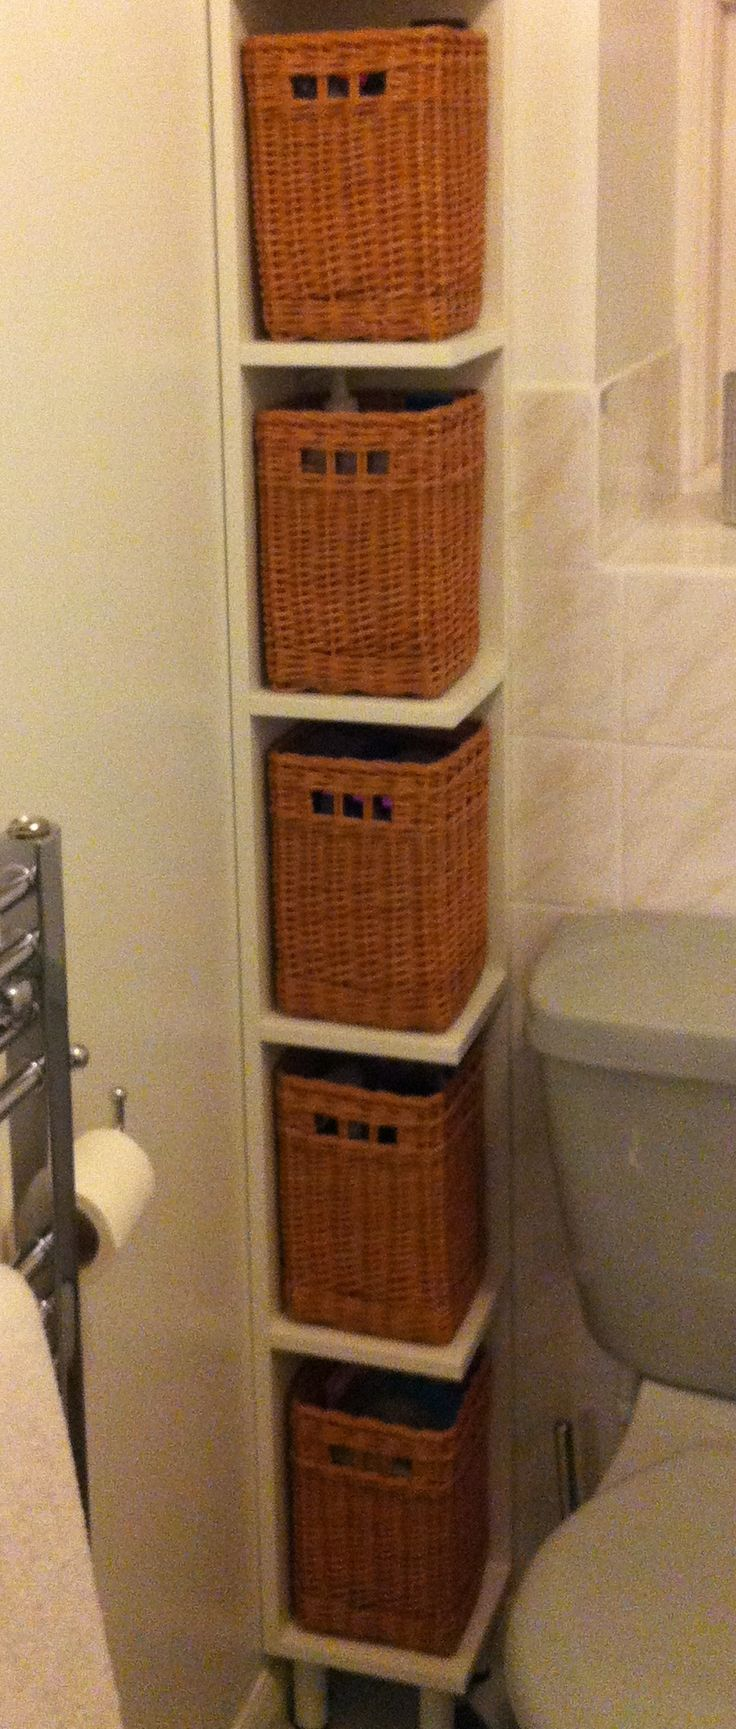 Bathroom cabinet storage solutions - Best 10 Bathroom Storage Diy Ideas On Pinterest Diy Bathroom Decor Bathroom Storage And Small Bathroom Storage